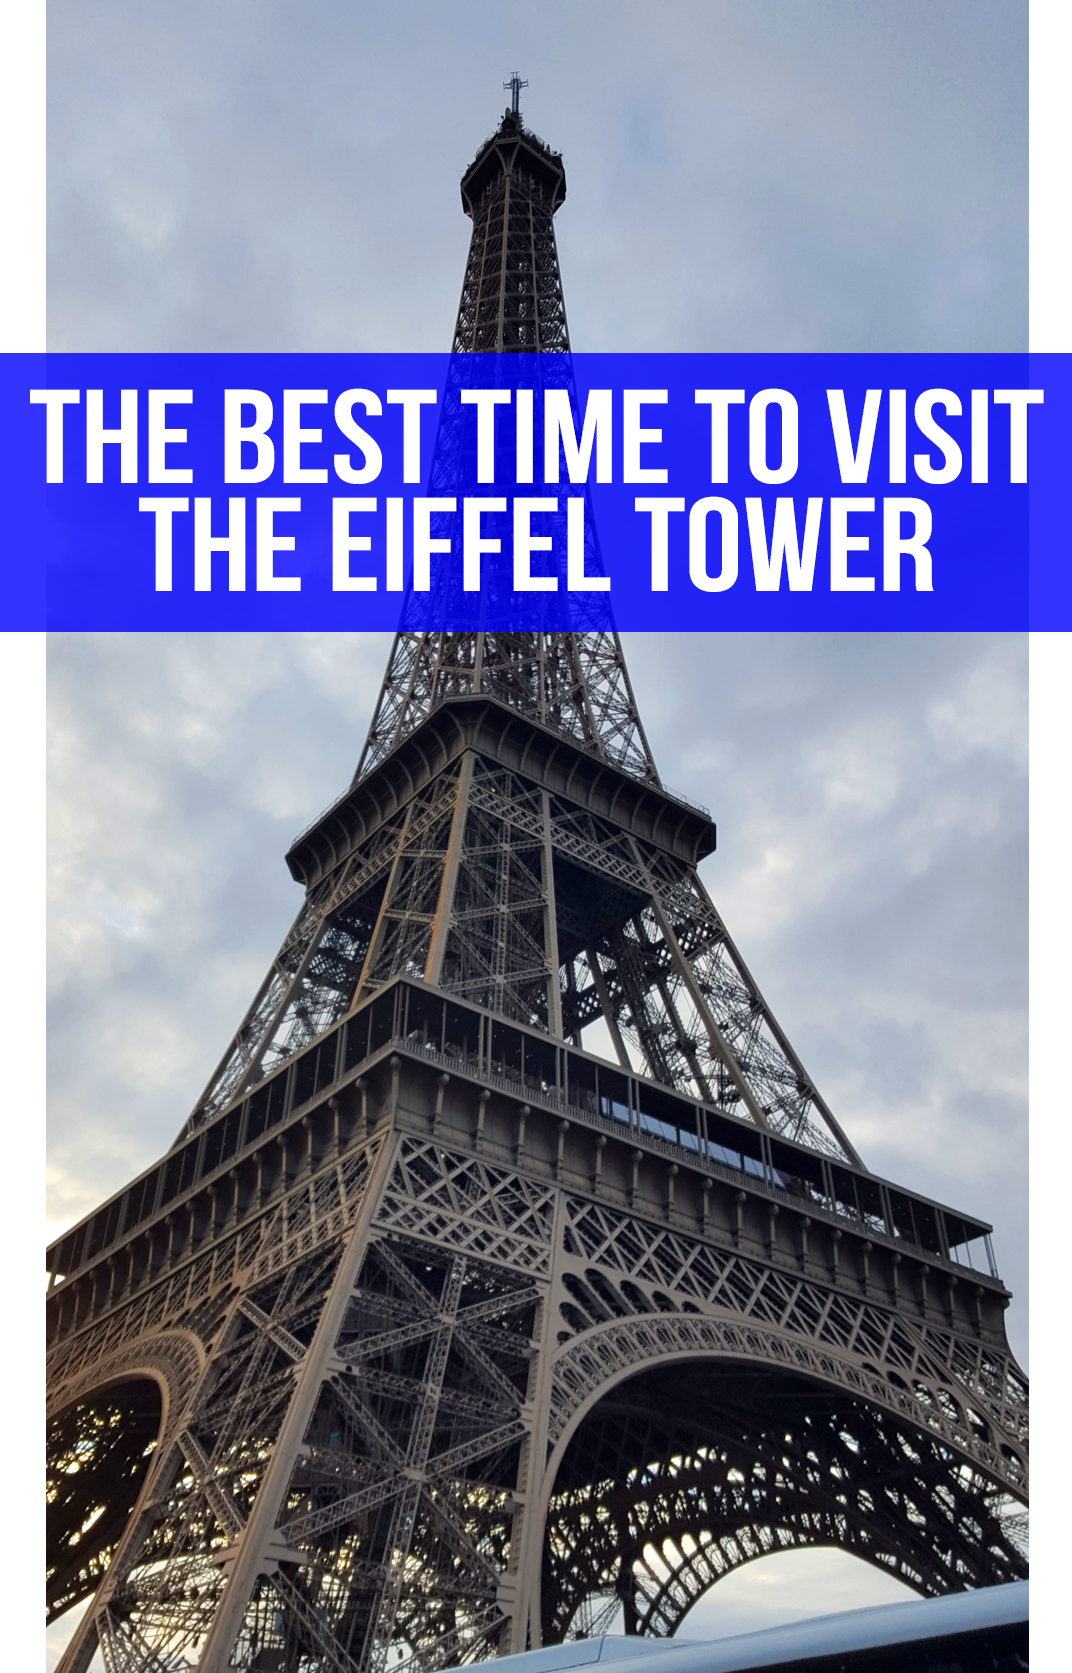 The best time to visit the Eiffel Tower